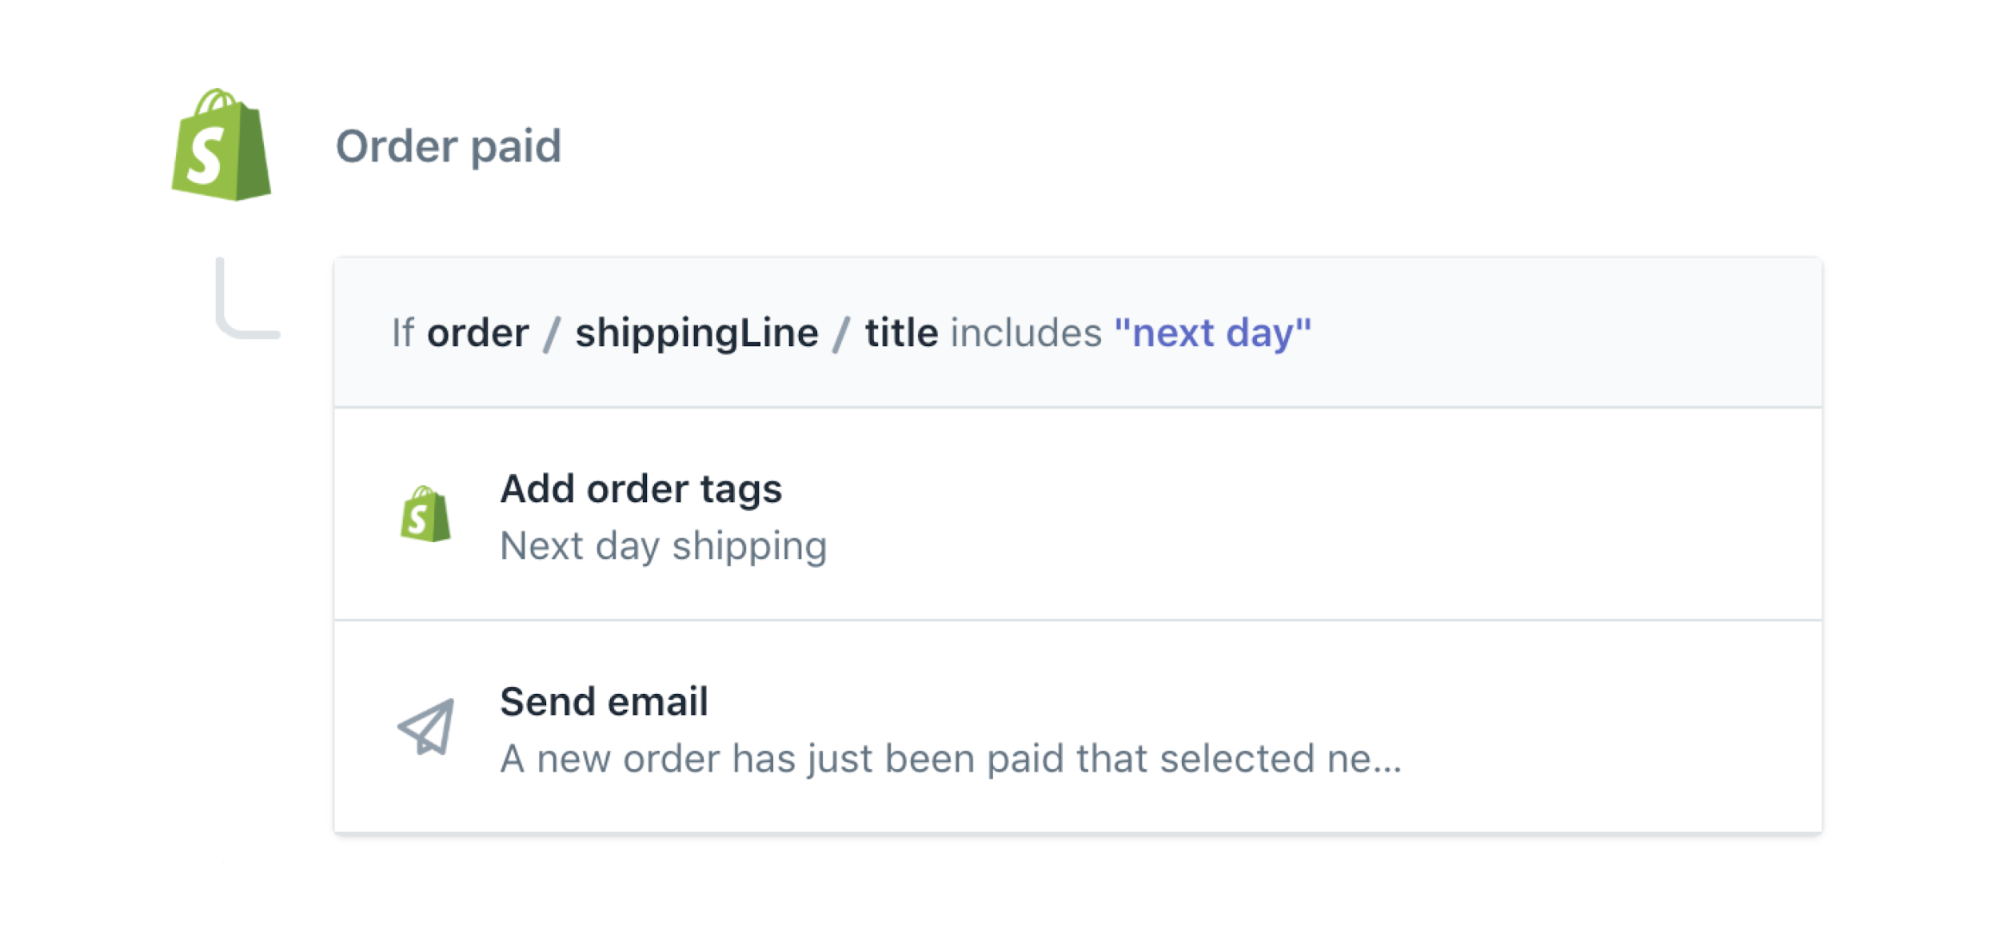 Expedited order ecommerce automation template to email logistics team